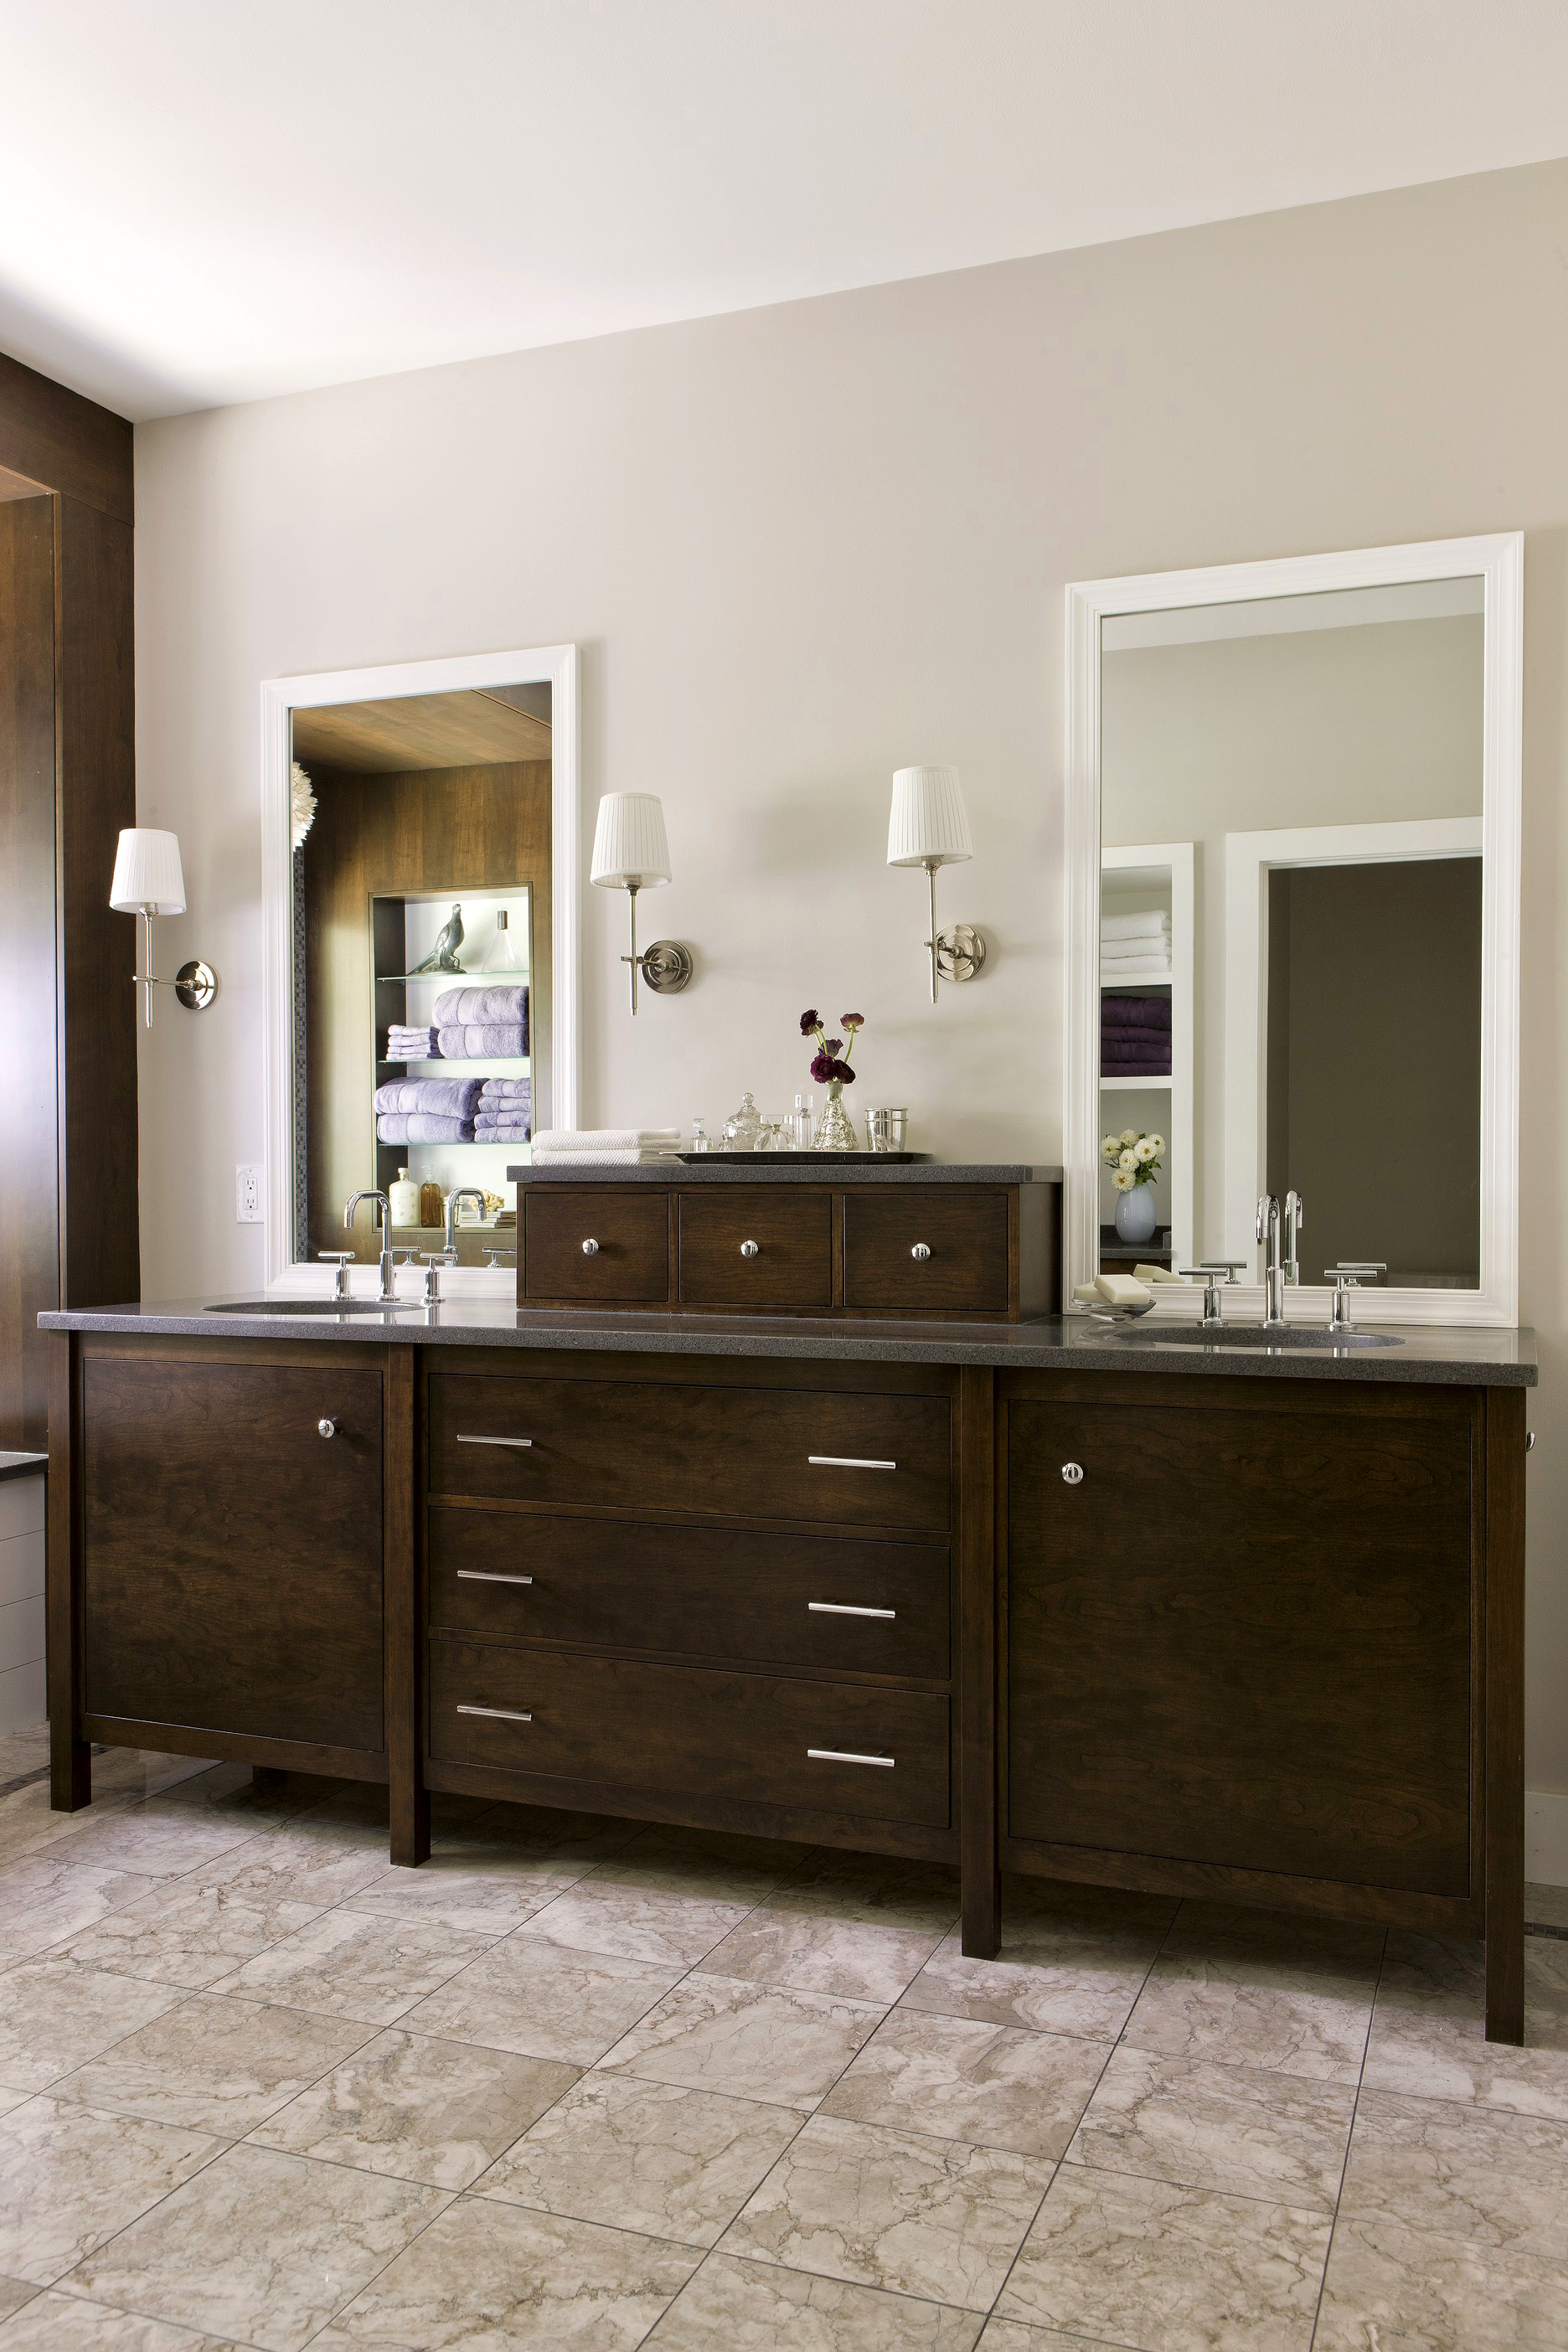 Double Sinks and Storage